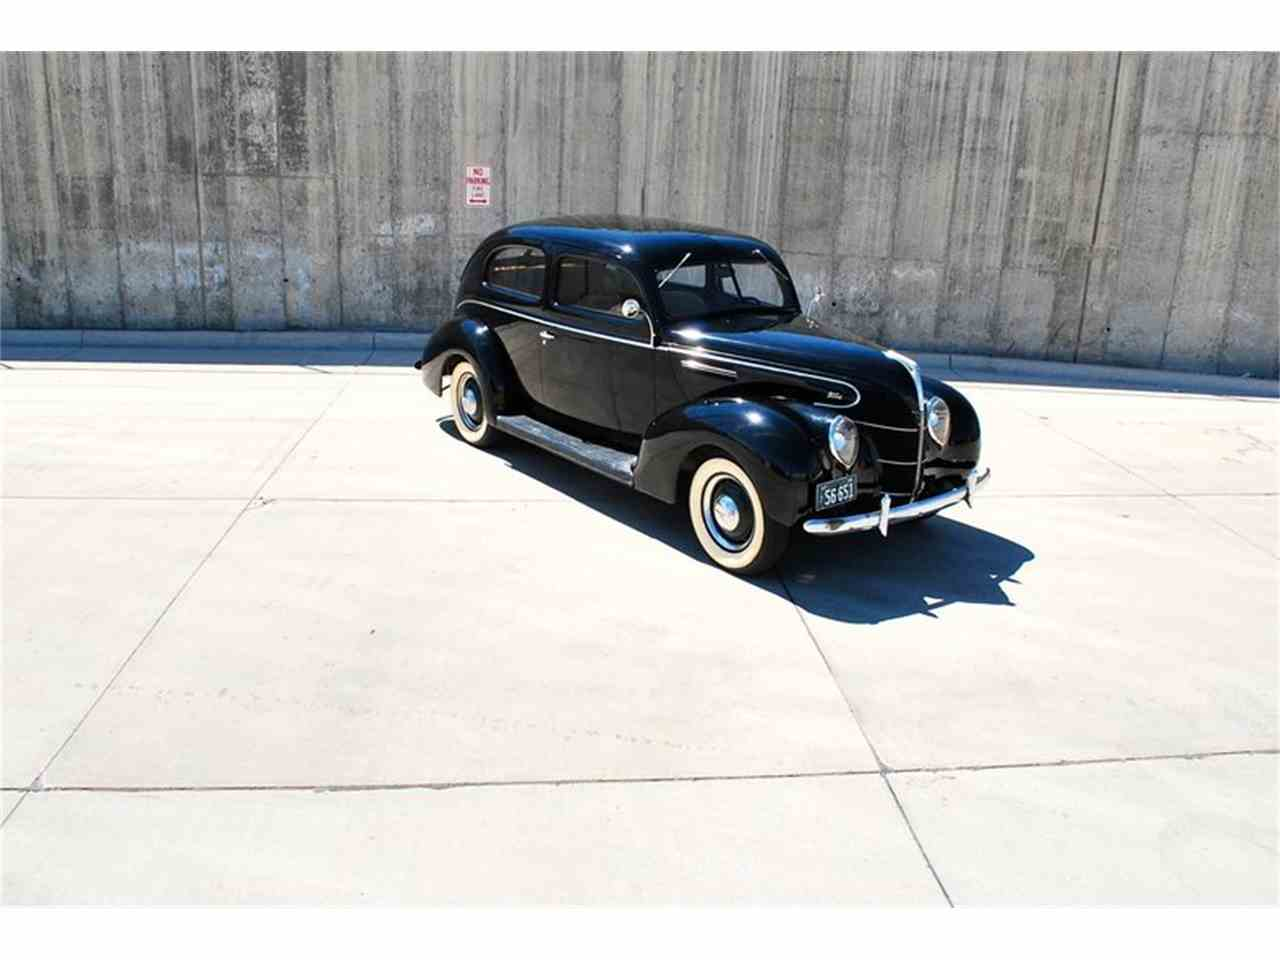 Large Picture of Classic '39 Ford 1 Ton Flatbed located in Utah - $19,500.00 - LI02